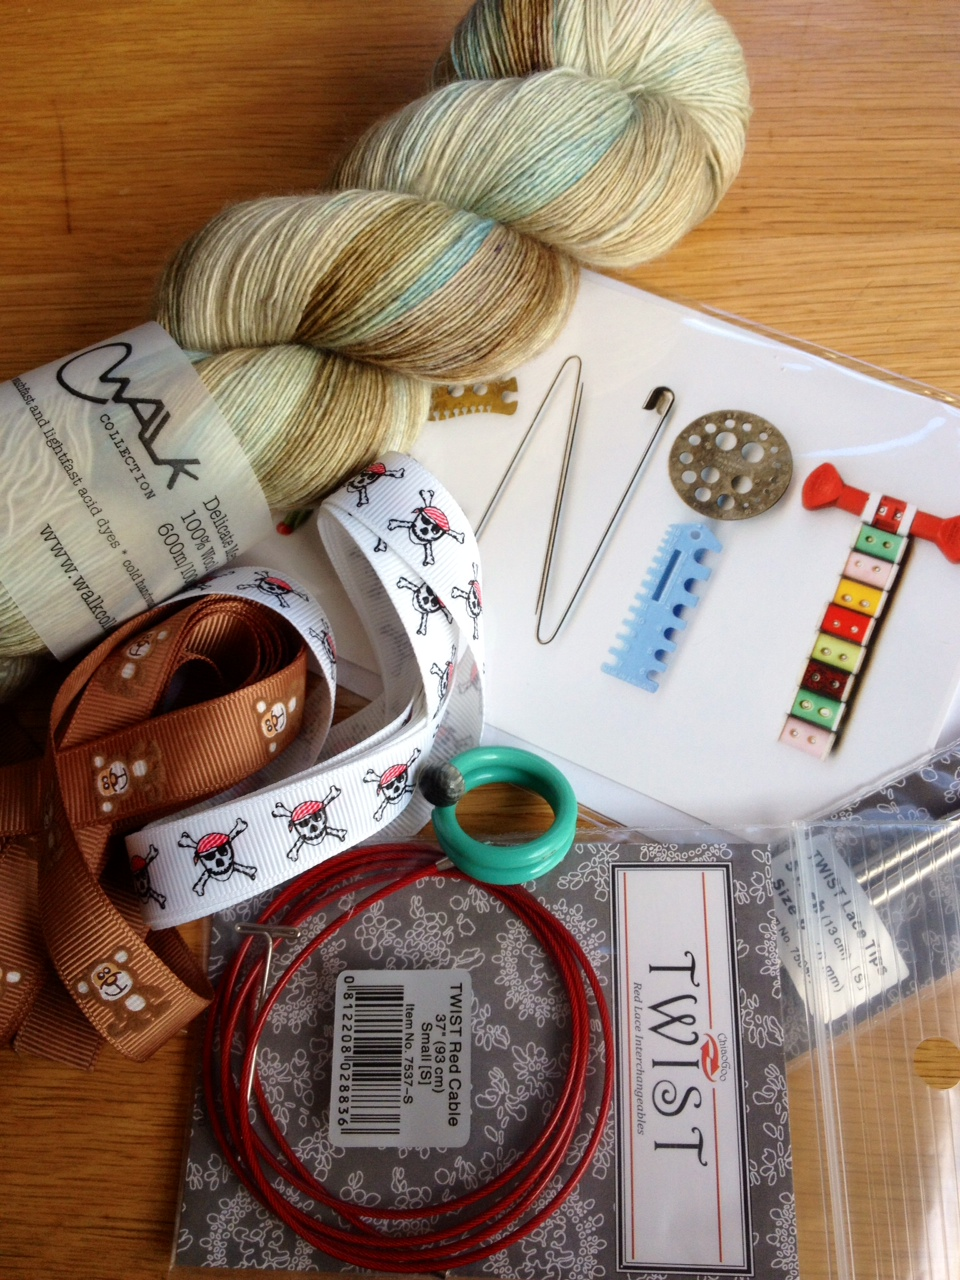 Rachel's purchases: ribbons from Brighton Sewing Centre, ring and card from Yellow Bear Wares, lovely Walk Collection yarn and ChiaoGoo tips/cable from YAK.